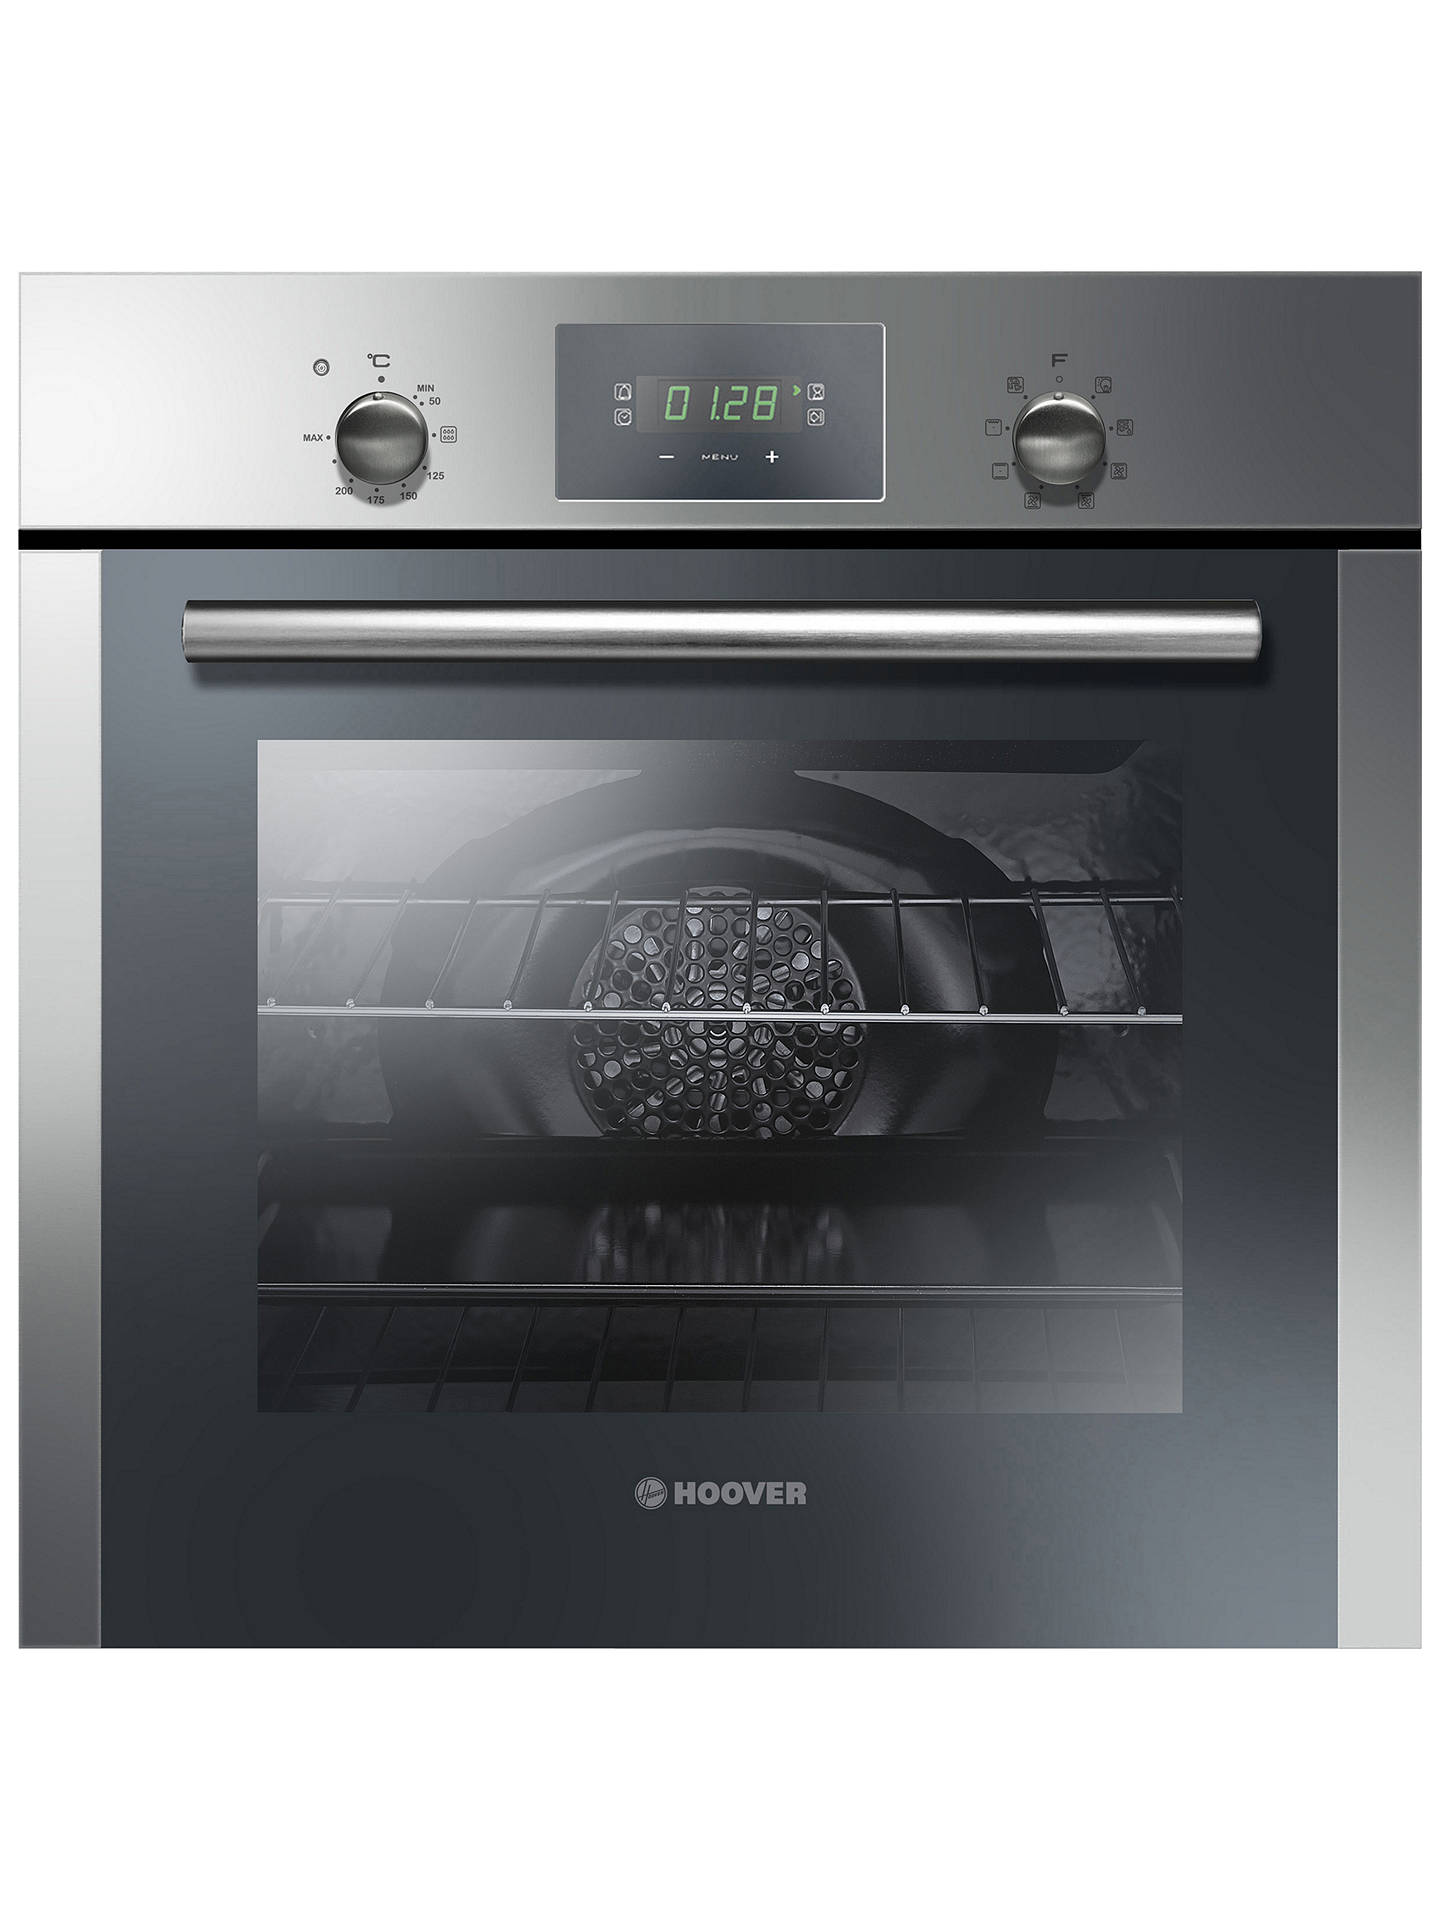 Hoover HOC709/6X Built-in Single Easy Clean Oven